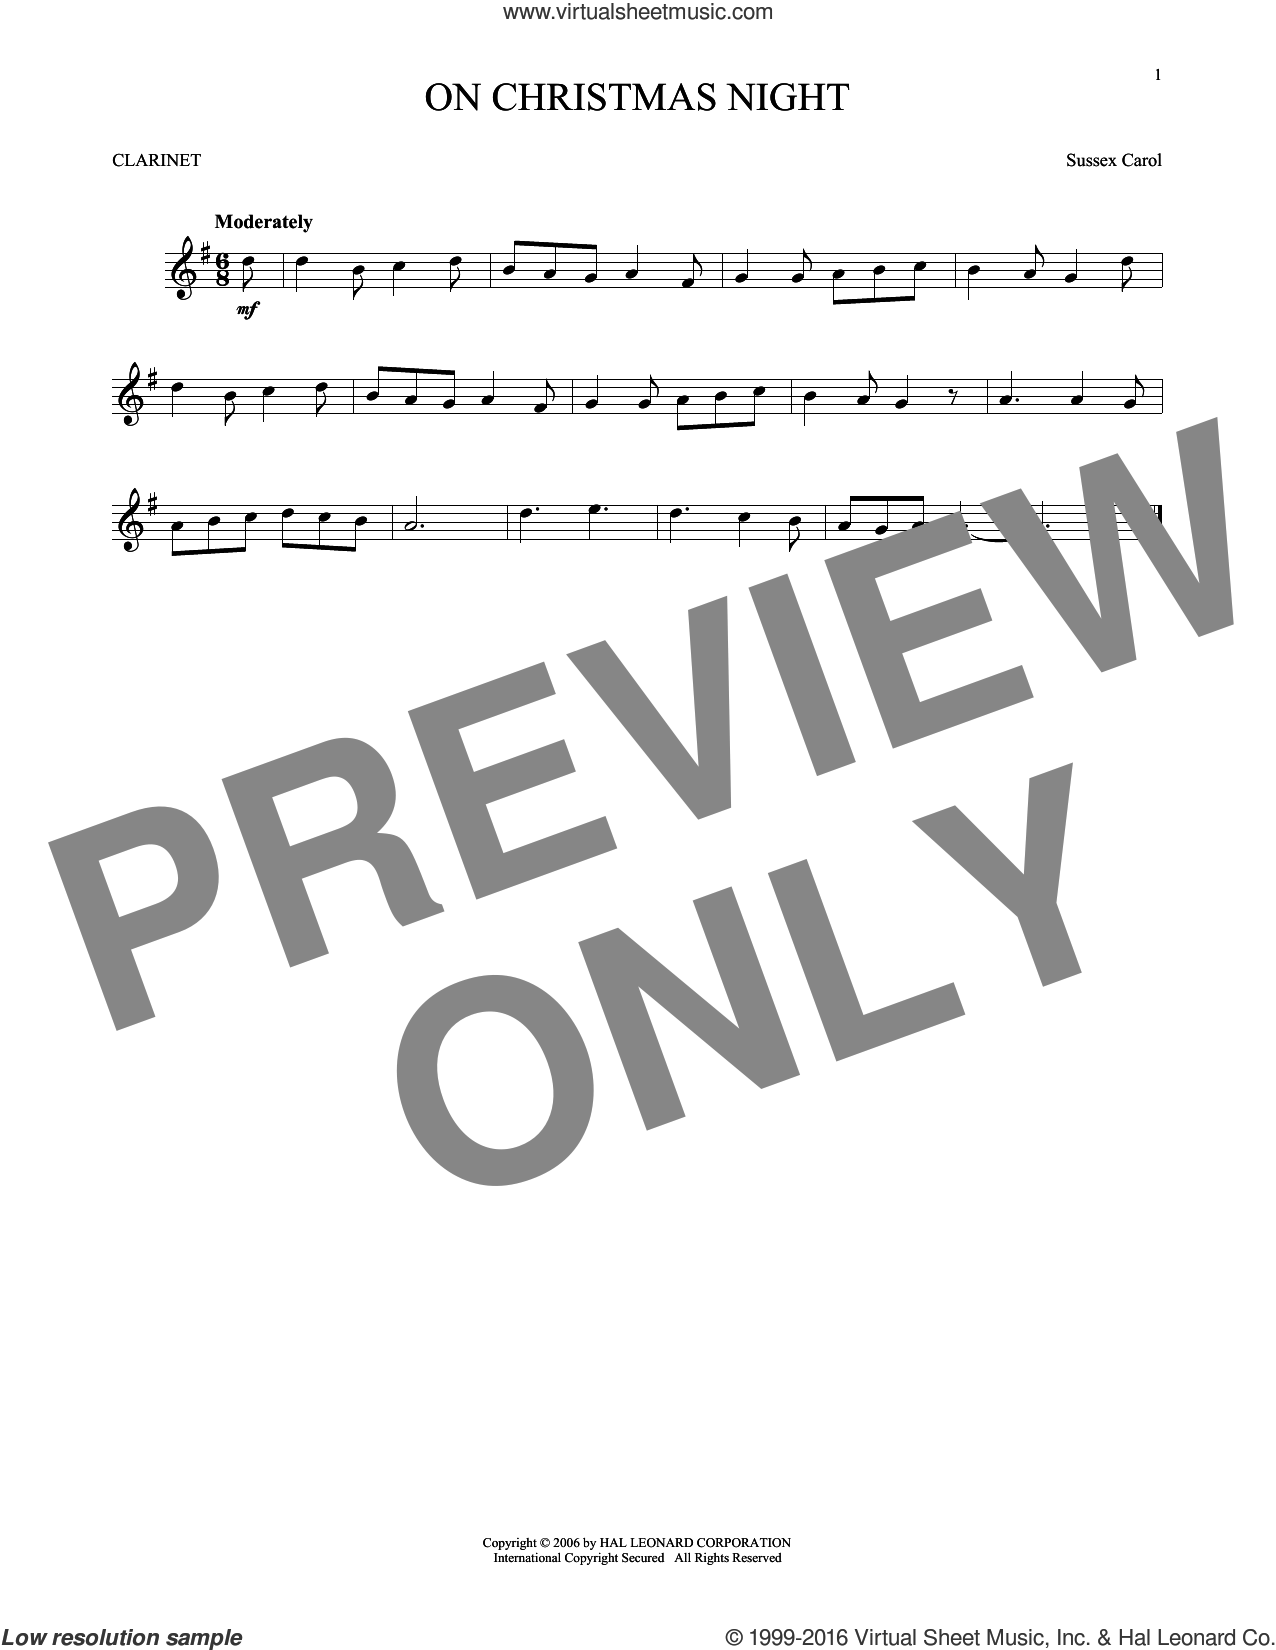 On Christmas Night sheet music for clarinet solo. Score Image Preview.